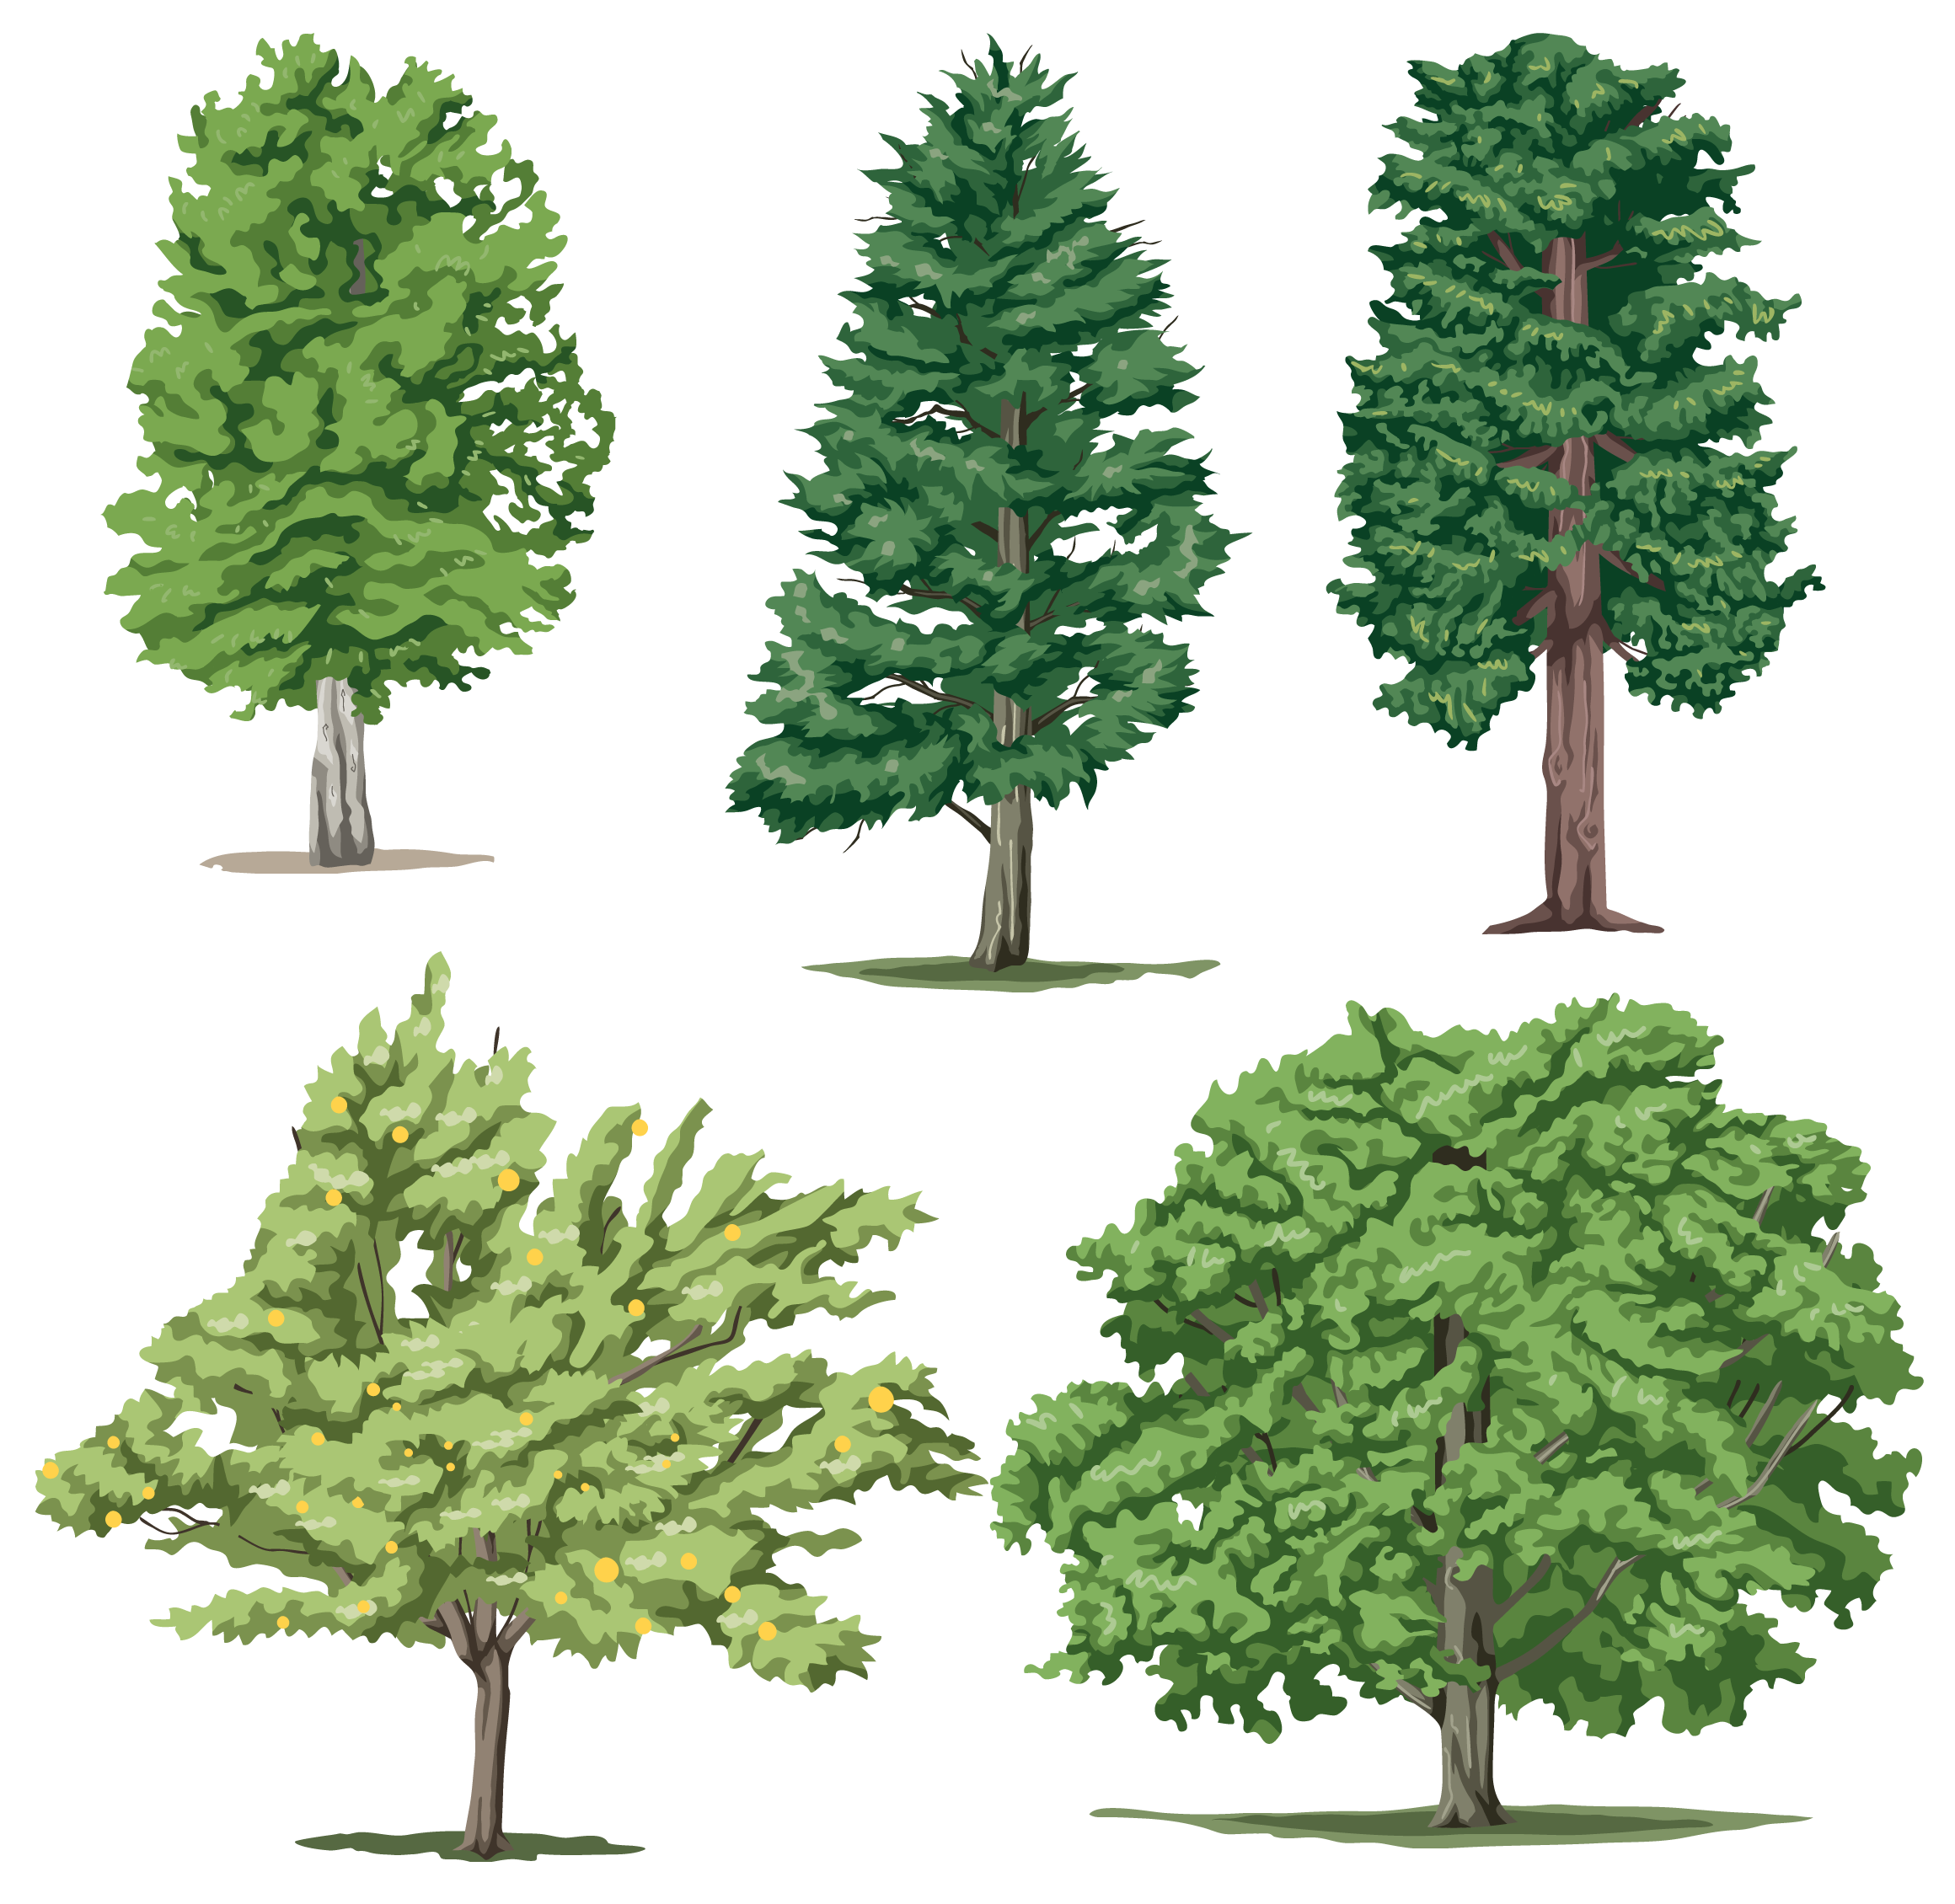 Realistic tree clipart vector freeuse download Tree Png Cartoon Realistic Trees All Types vector freeuse download